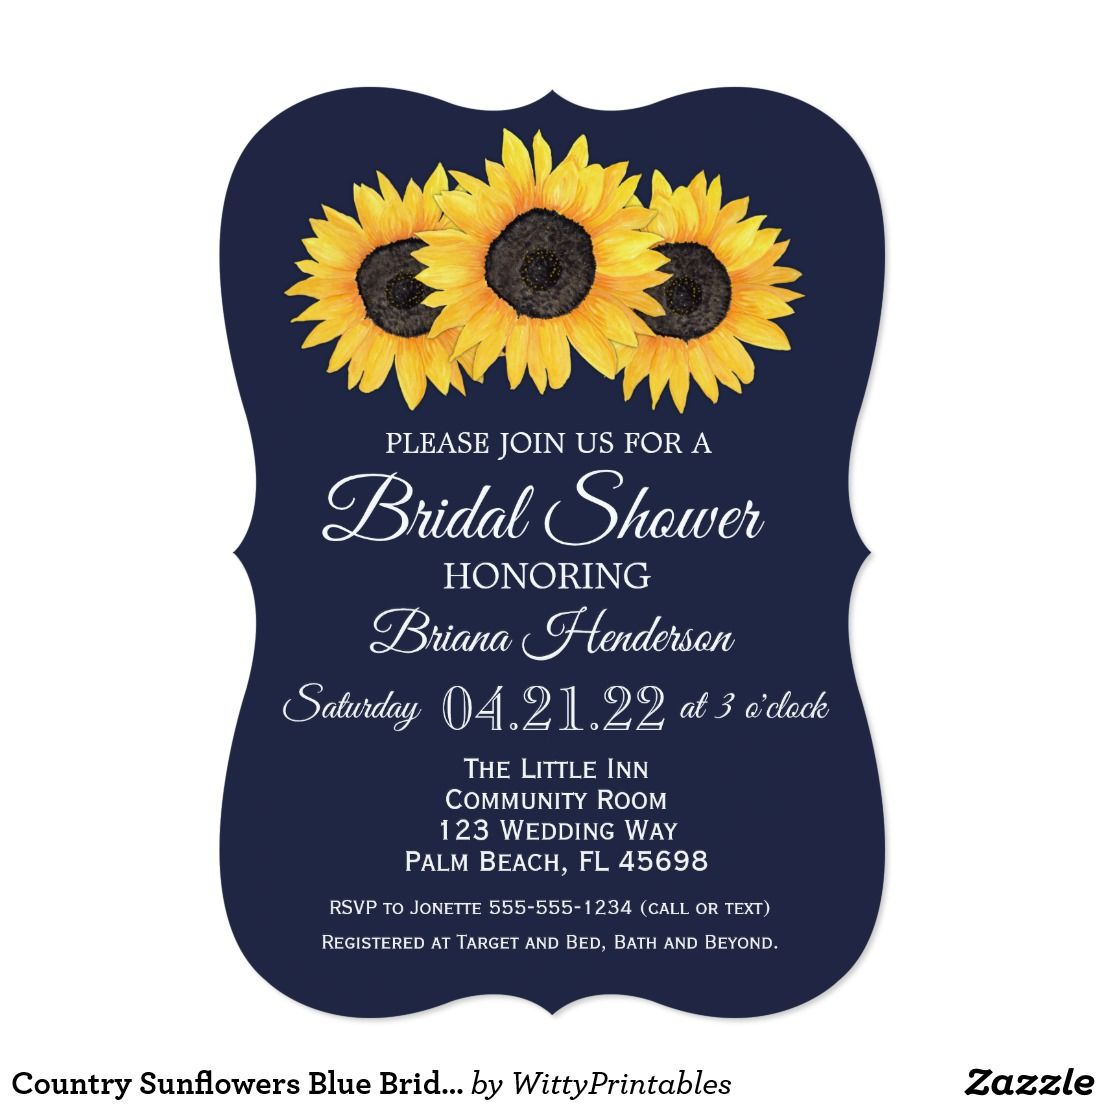 Sunflowers Bridal Shower Invitations Country Blue | Bridal showers ...